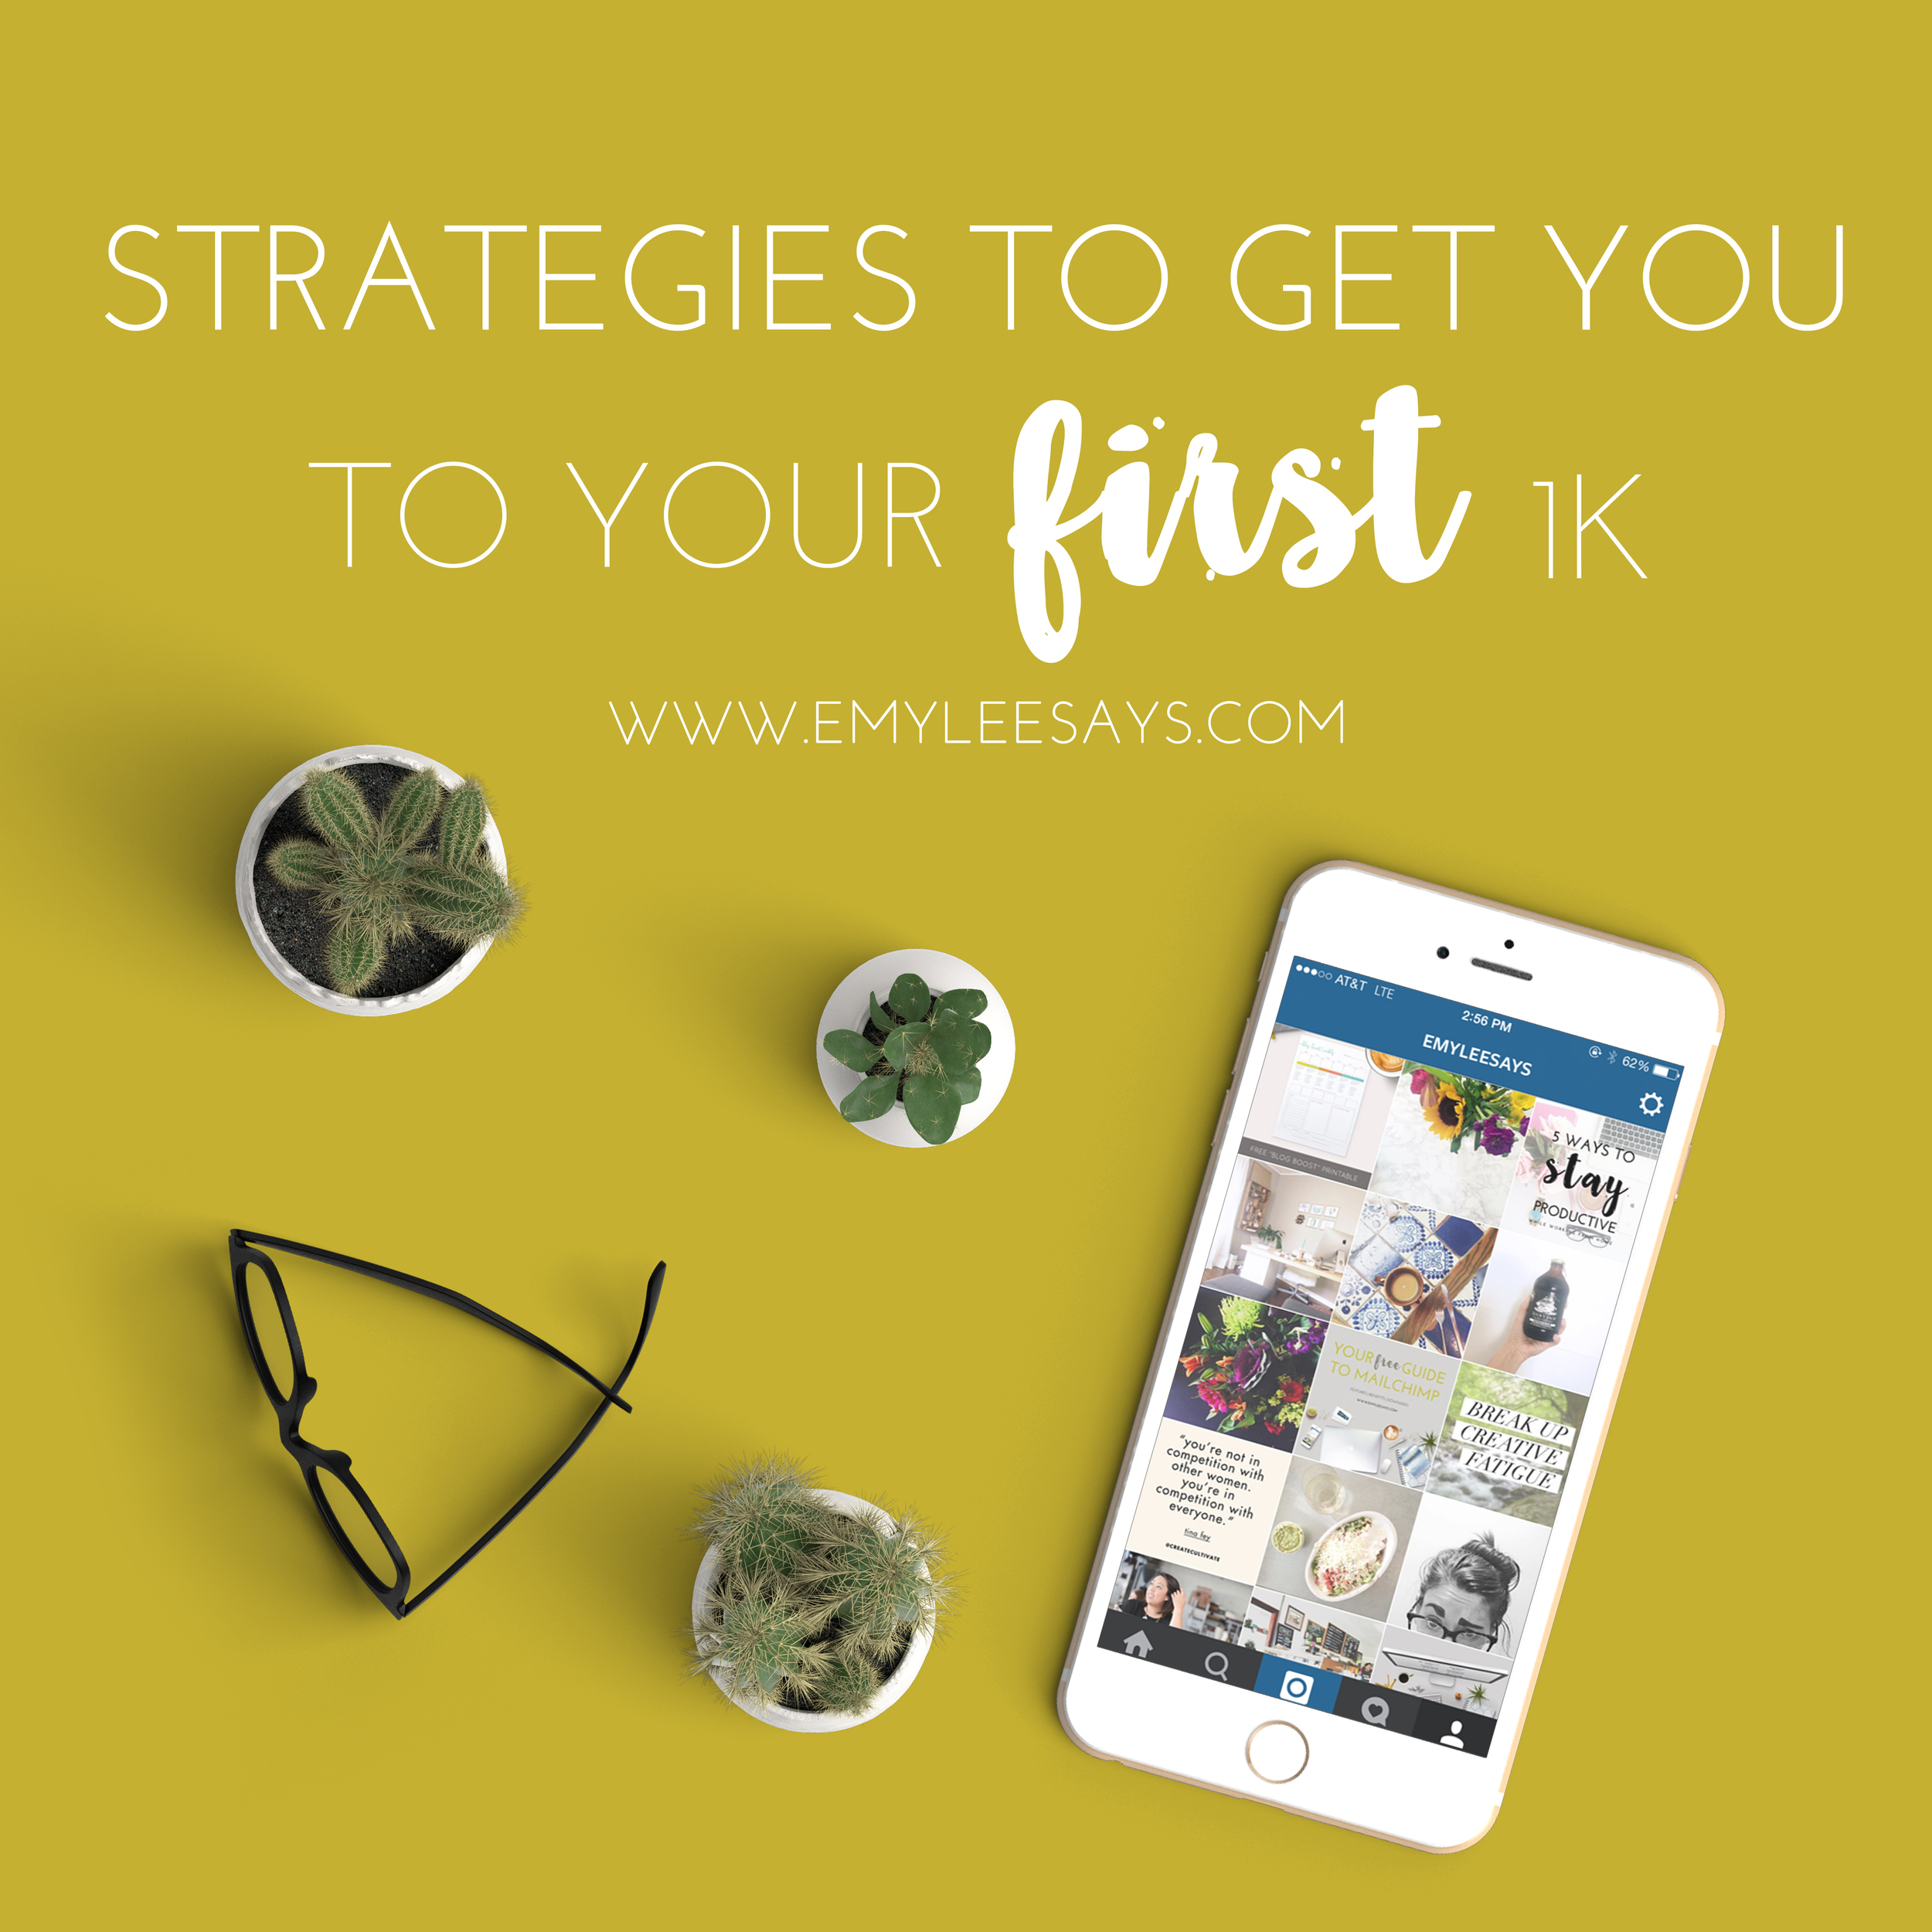 Copy the strategies I used to get my first 1k on Instagram and take note of the tactics that ended up being a huge waste of time.